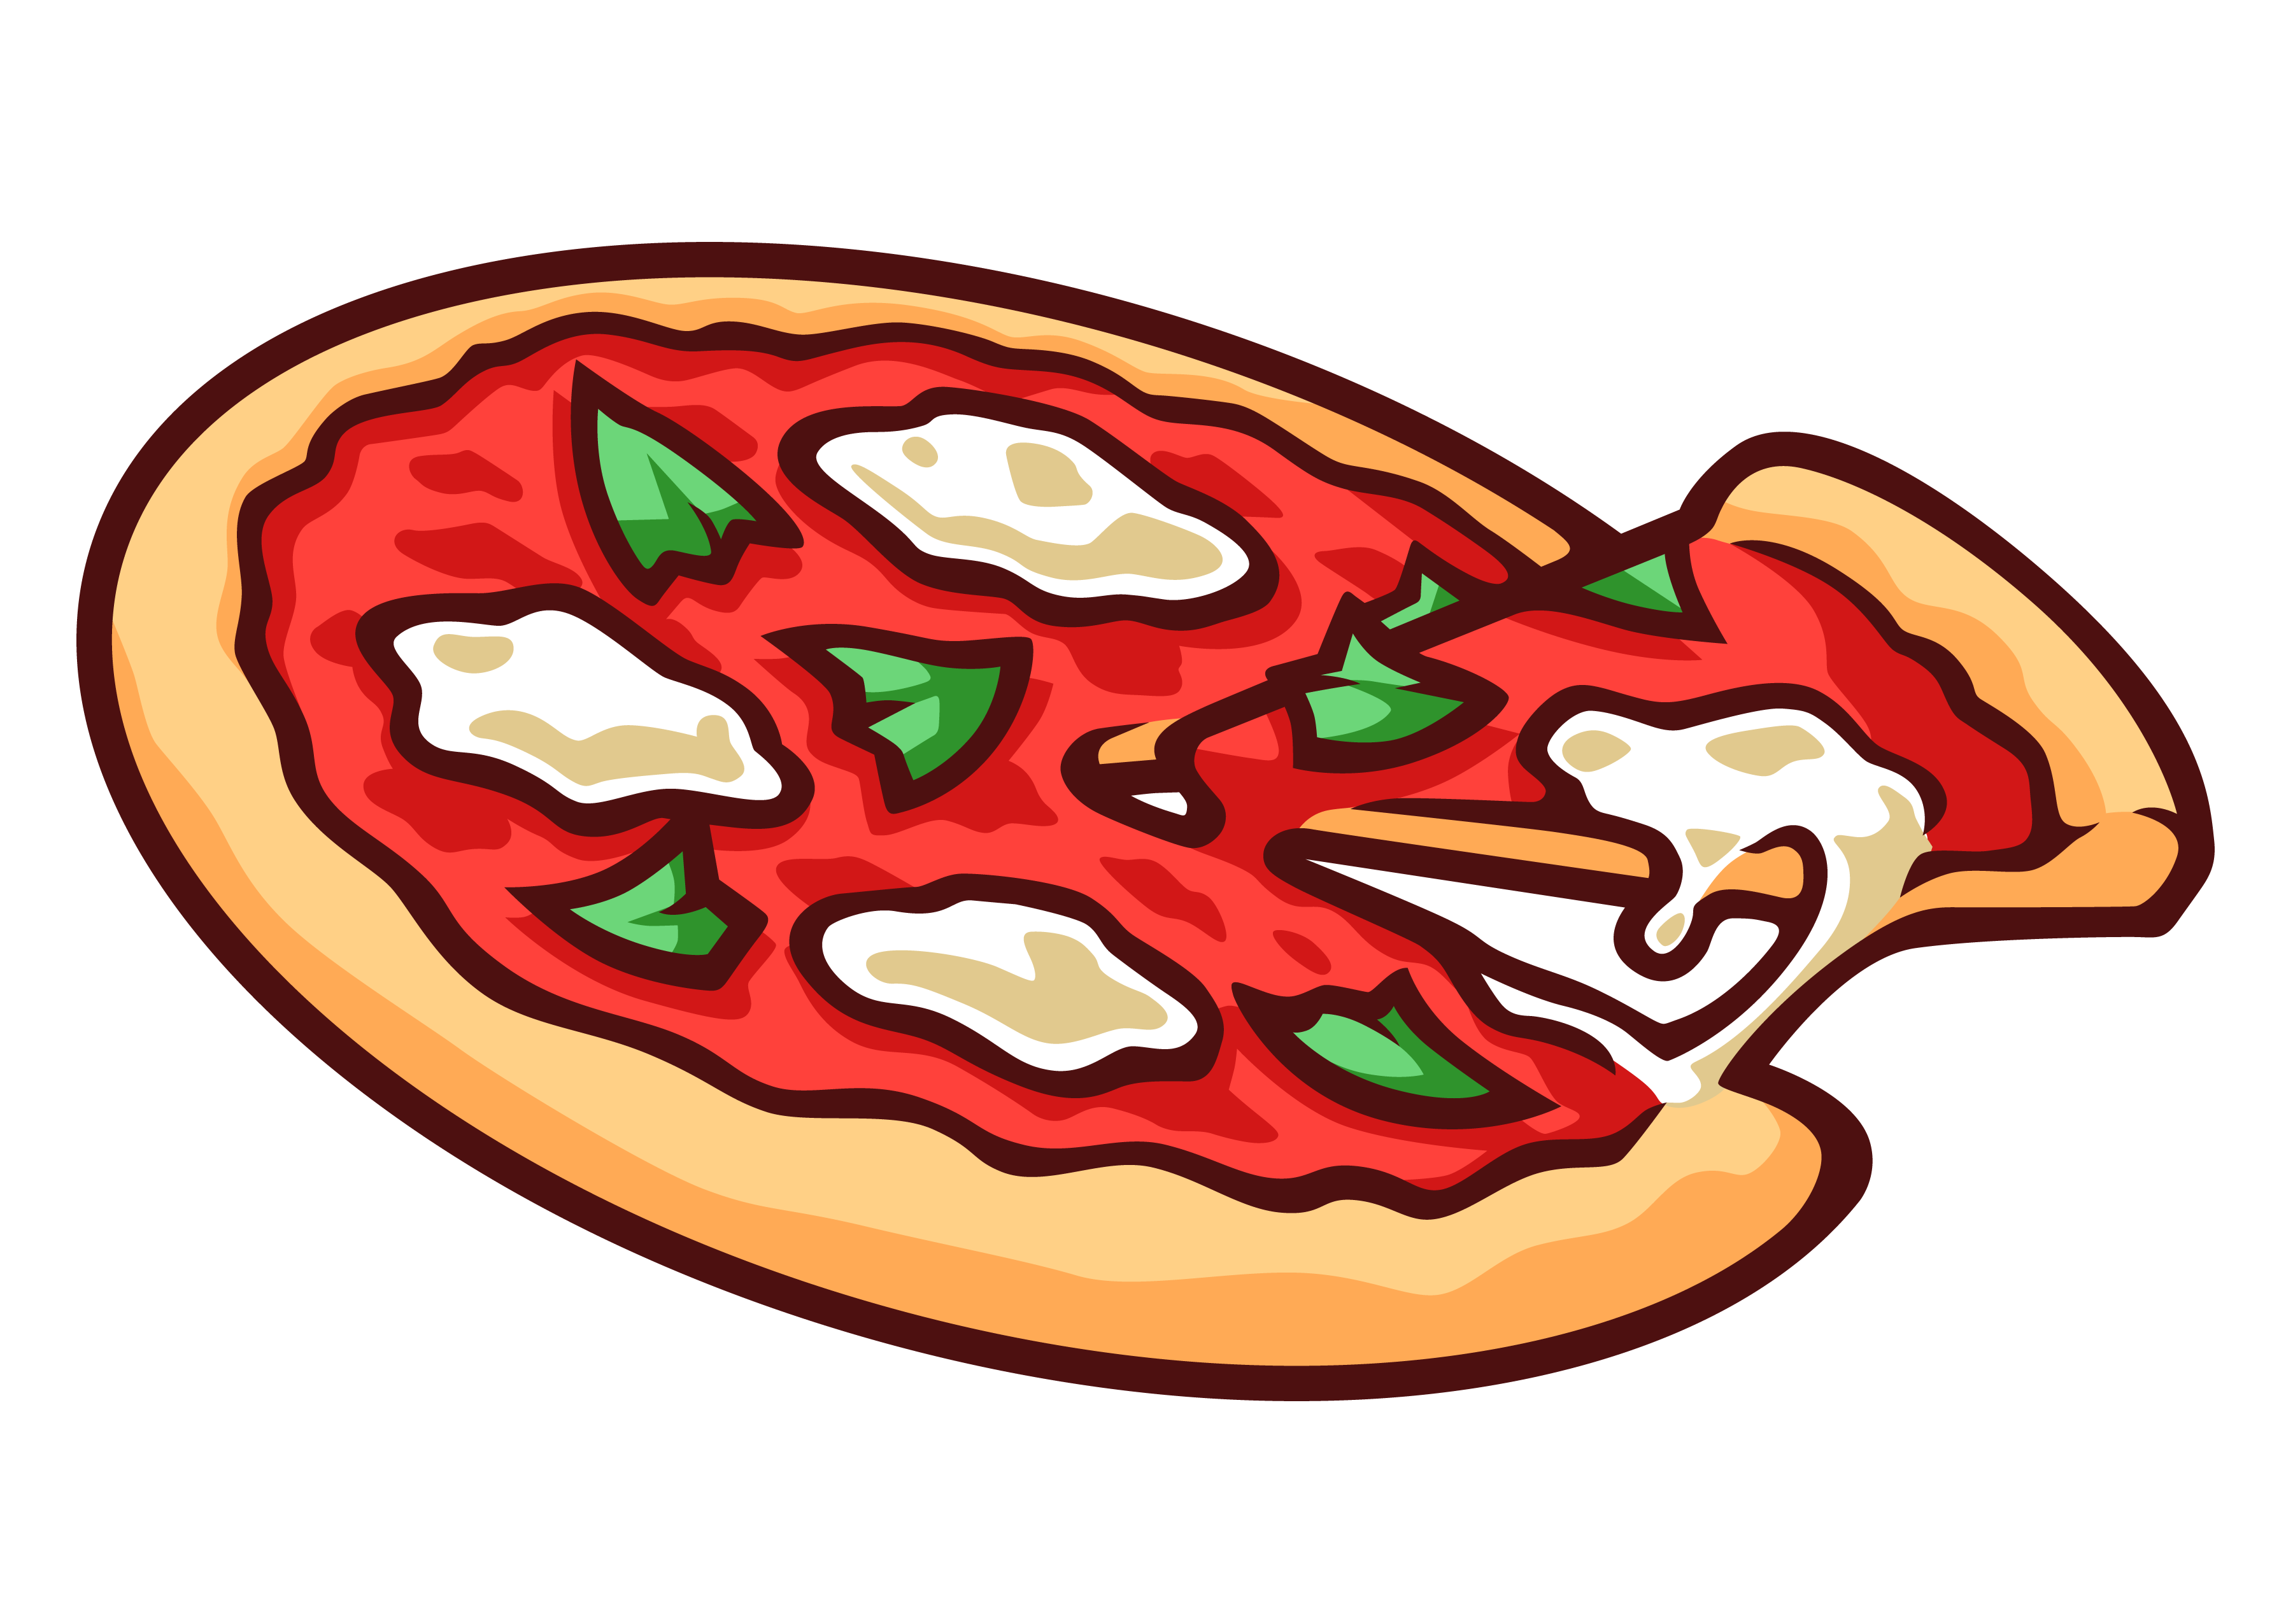 pizza and ice cream social sept 10th brookvale pta free volunteer clip art gif free volunteer clip art pictures